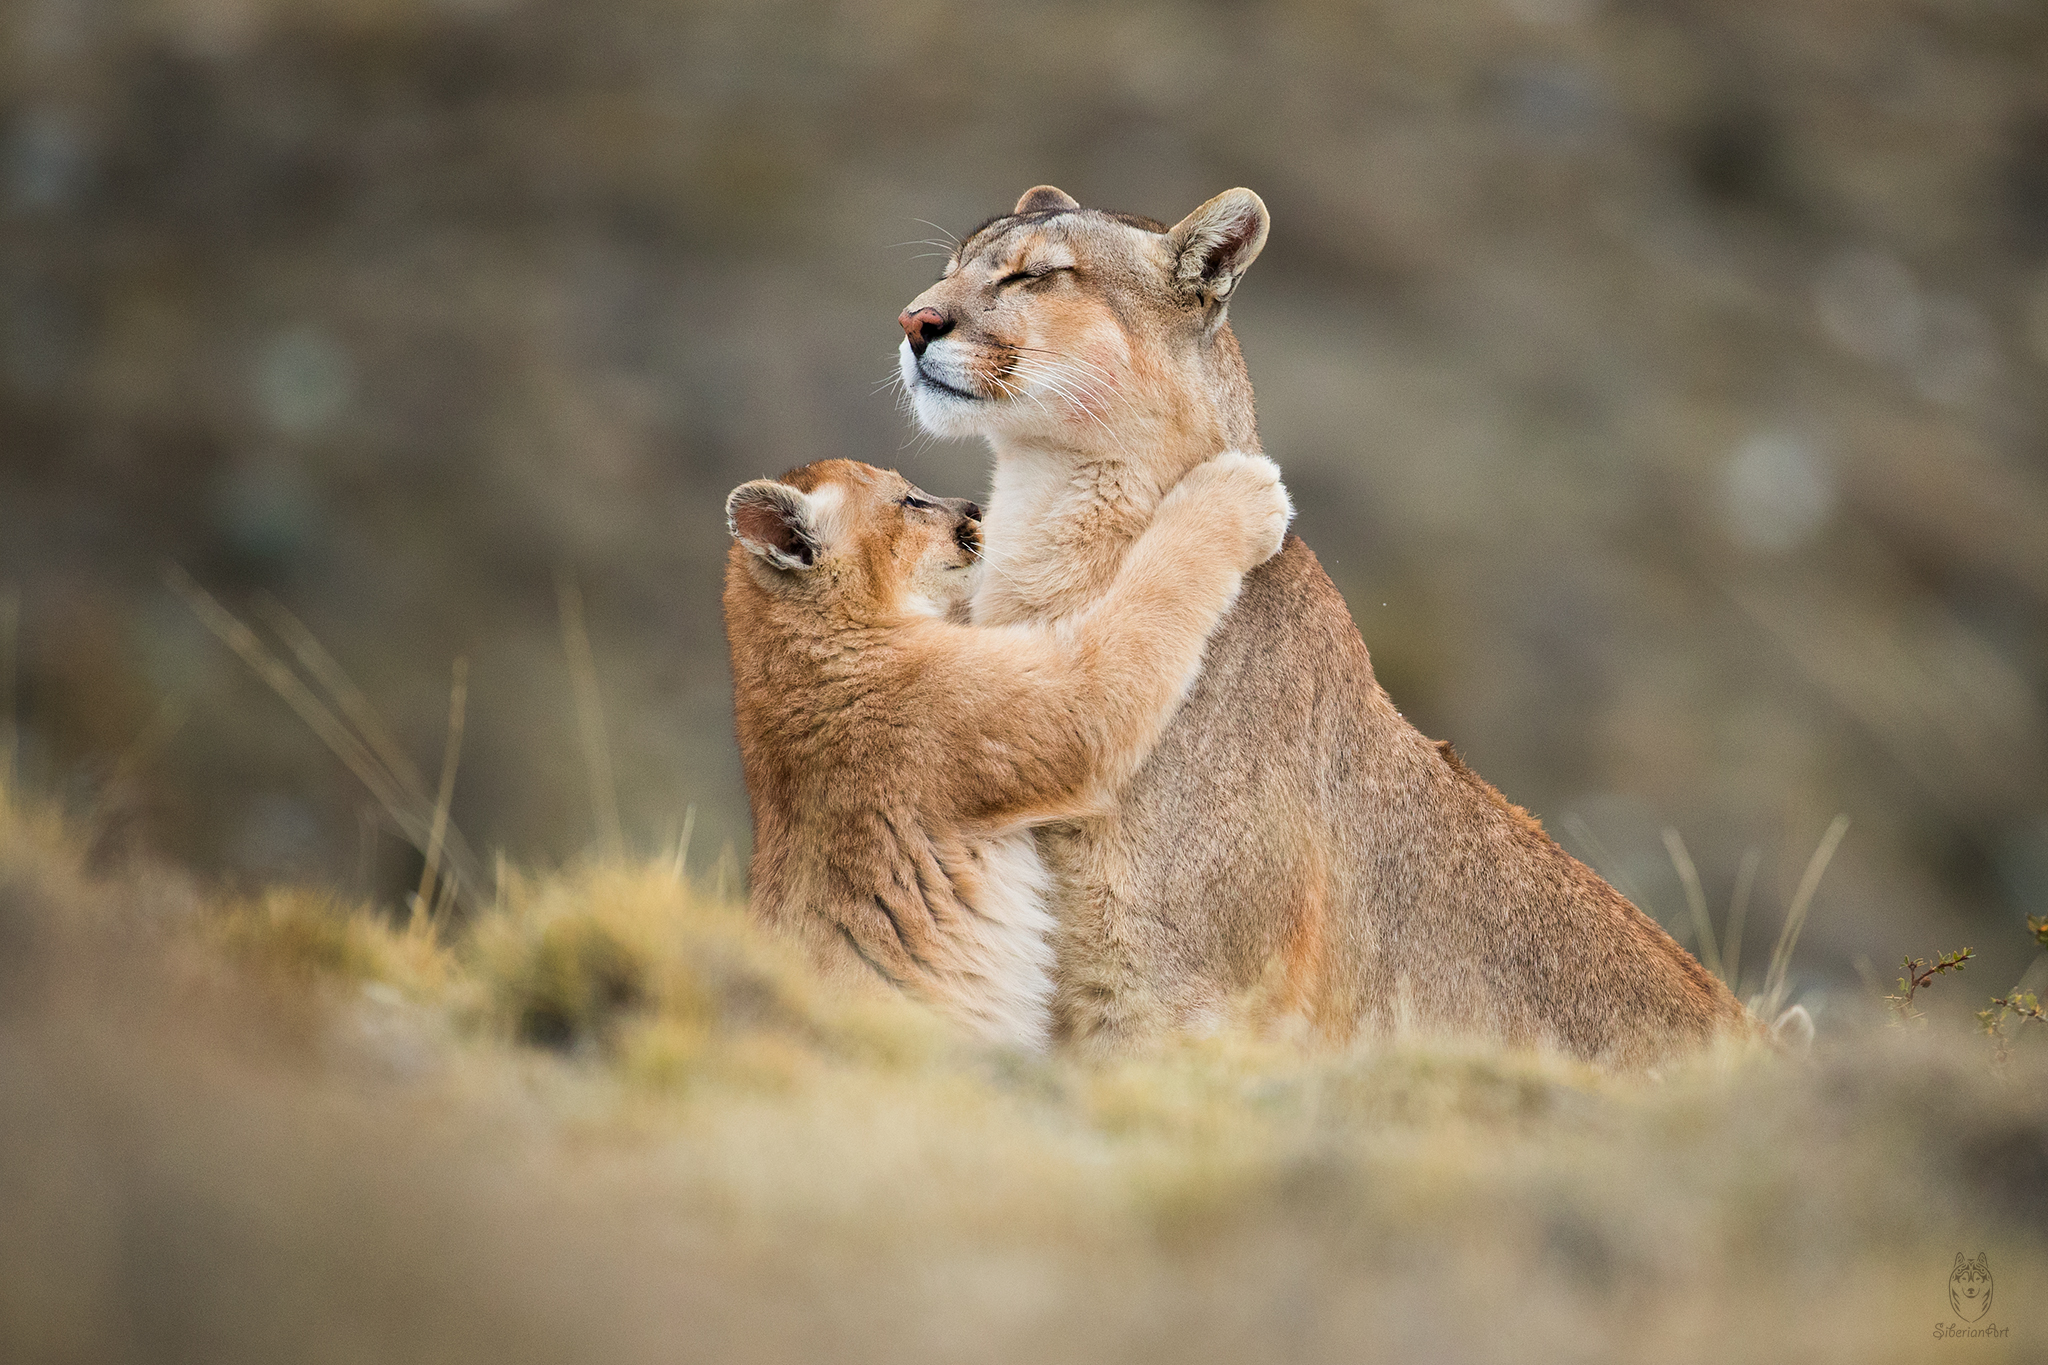 Emotional image of a Puma and kitten hug I captured in Patagonia, Chile.